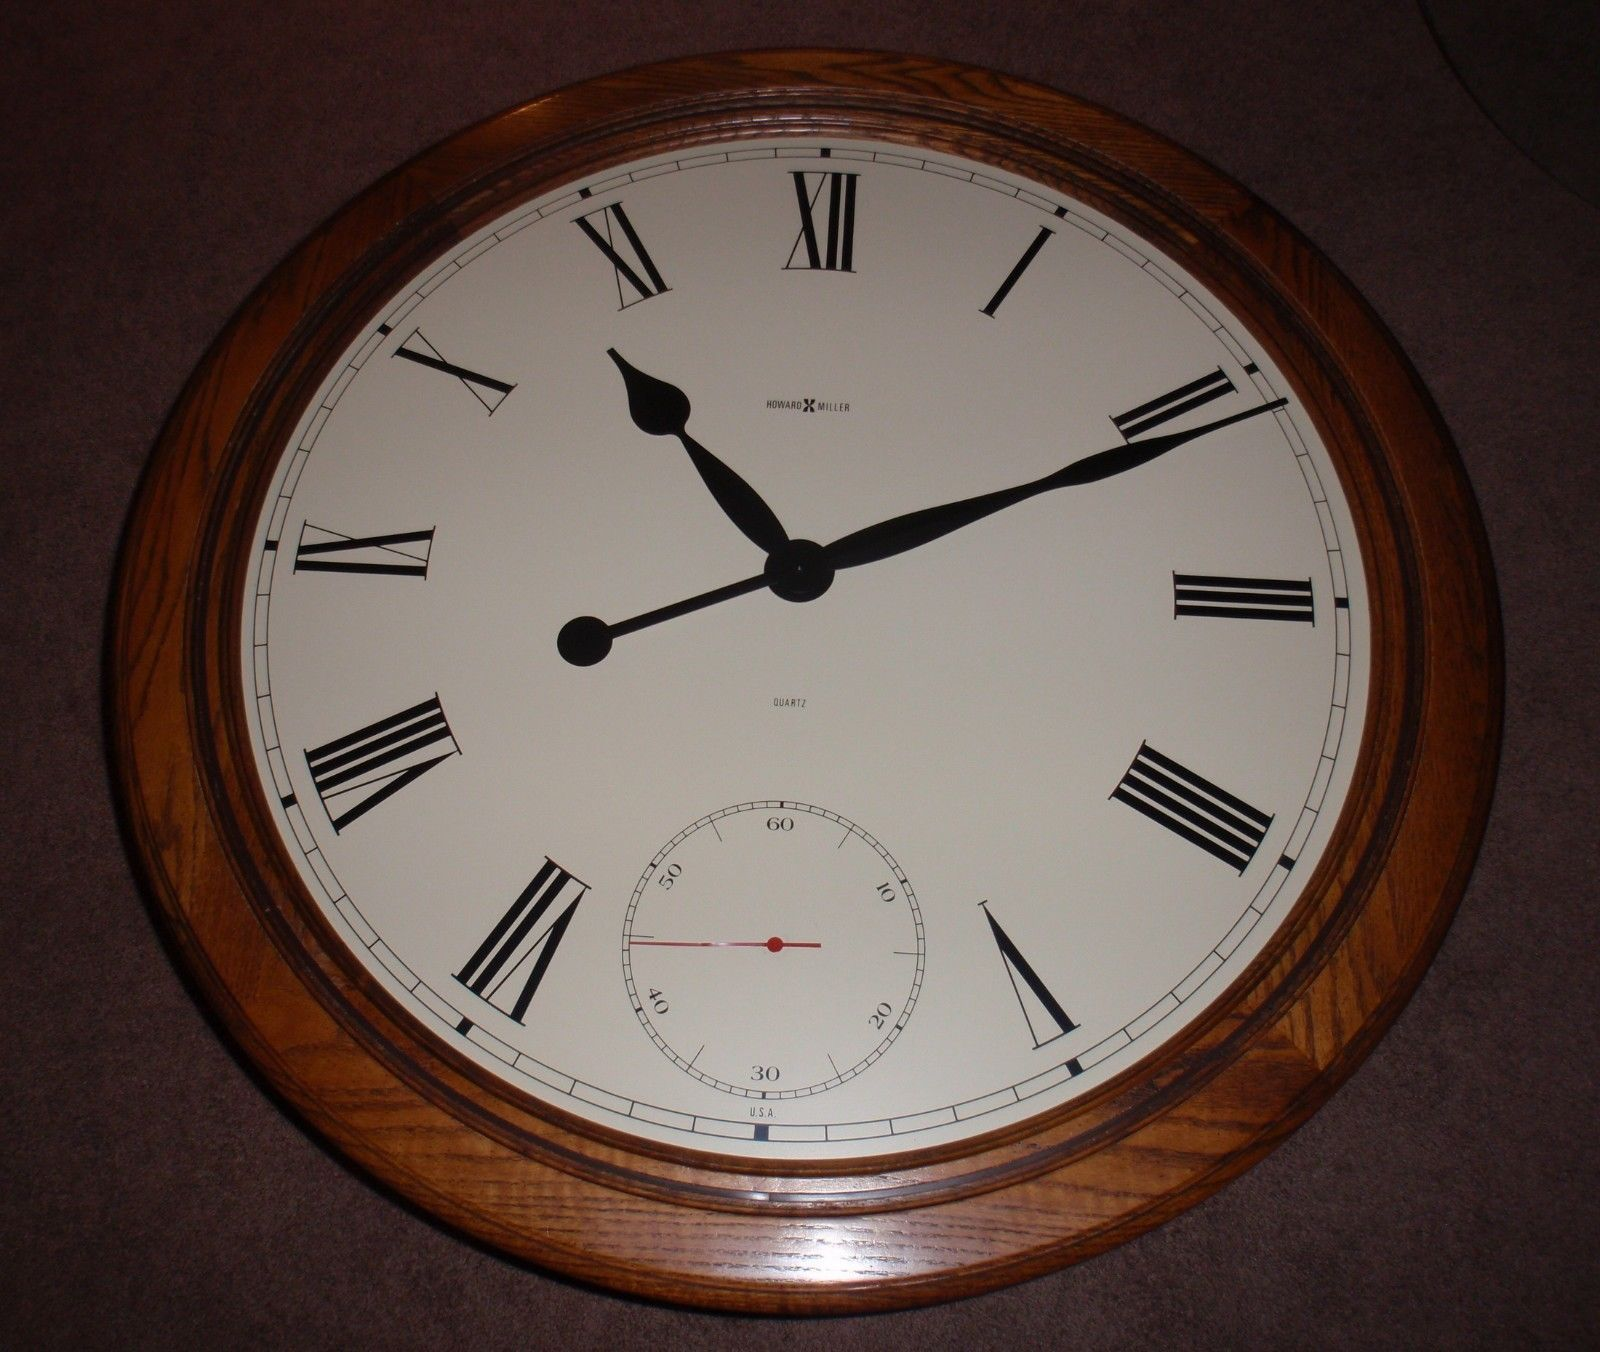 Howard Miller Floor Wooden Table Clock Model 612 680 ULTRA RARE CHRISTMAS  GIFT!